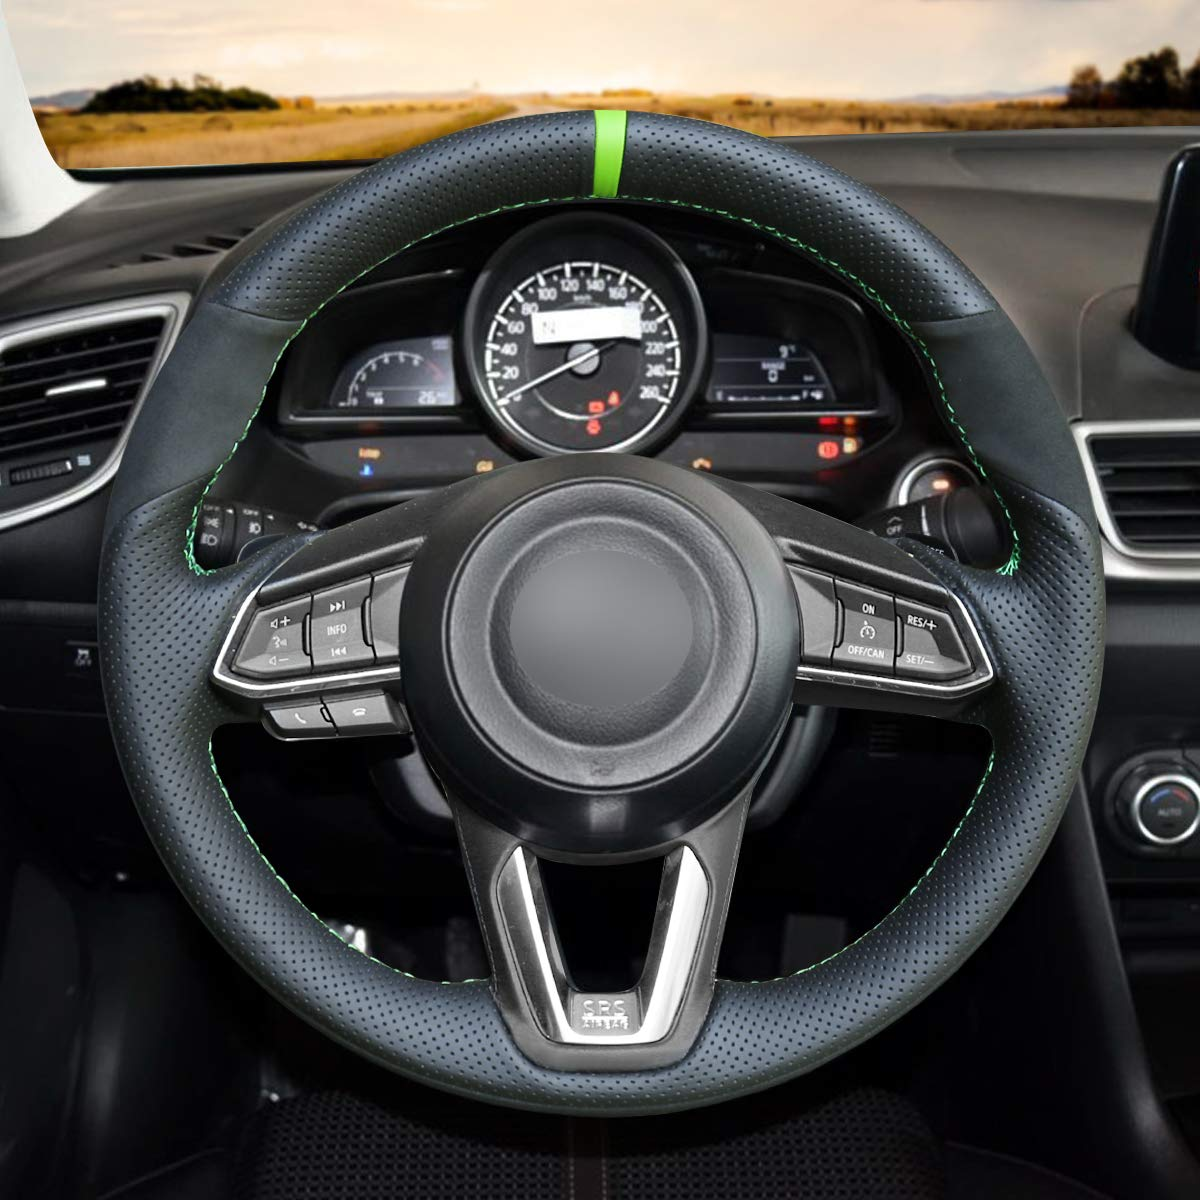 MEWANT Customized Black Artificial Leather Car Steering Wheel Cover for Mazda 3 2017-2018 Mazda 6 2017-2018 CX-3 2018-2019 CX-5 2017-2019 CX-9 2016-2019 for Toyota Yaris 2019